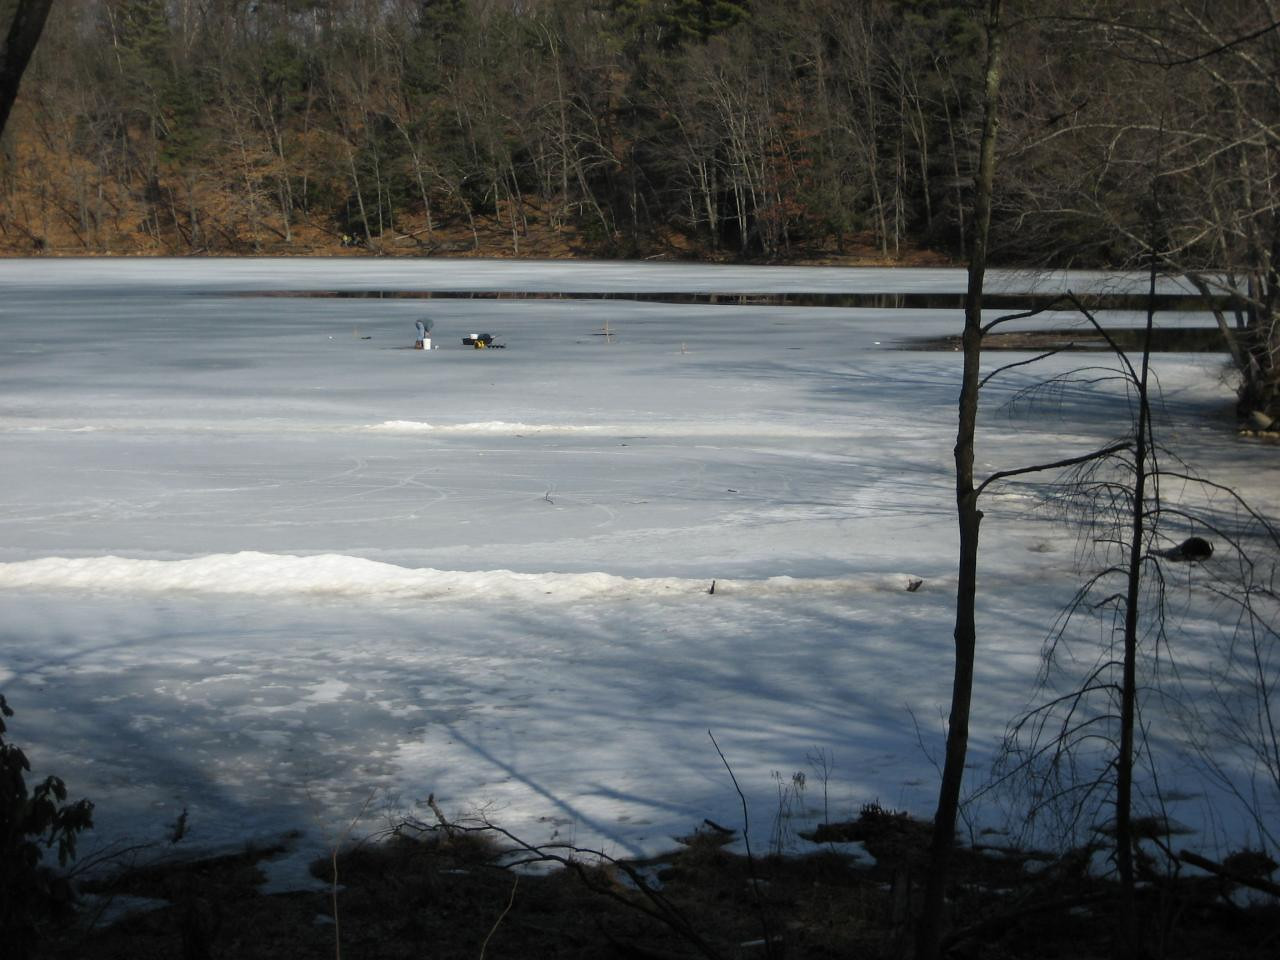 Ice fishing on Puffer's Pond